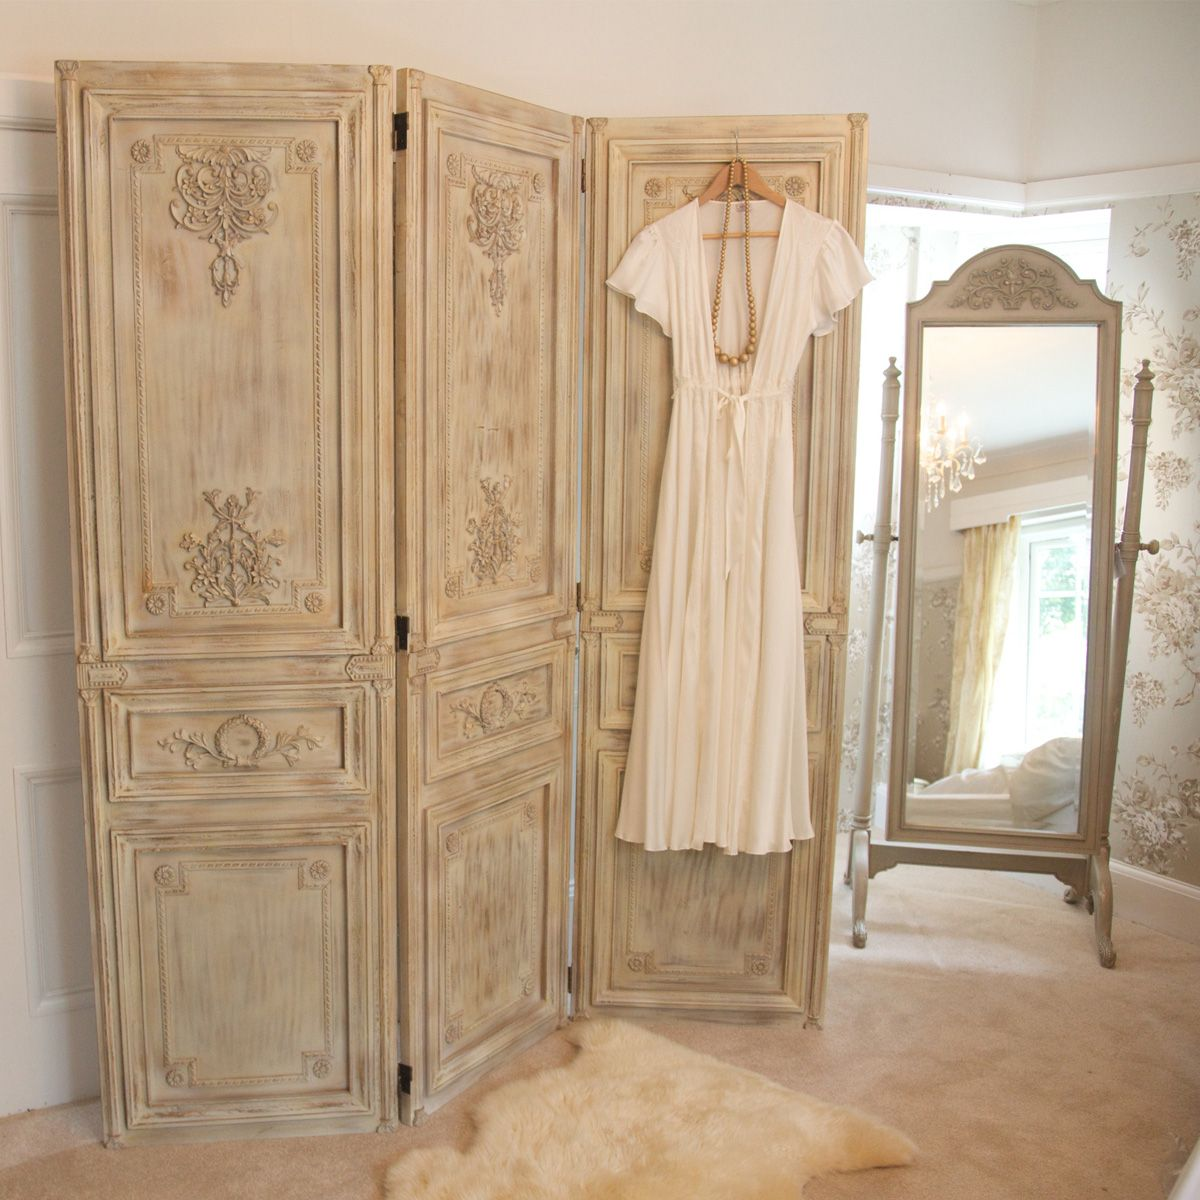 Limed Wooden Dressing Screen Dressing Screenroom Dividers Screens Limed Wooden Dressing Screen Open Plan Living